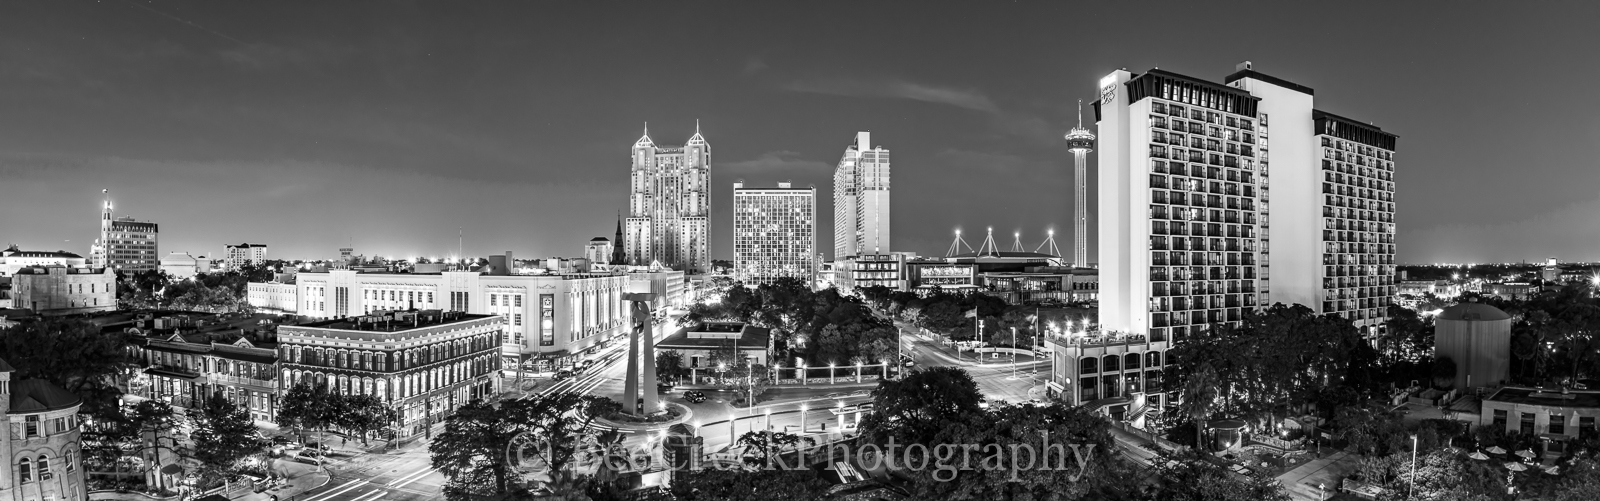 Grand Hyatt, Hilton, Marriott, Riverwalk, San Antonio, Tod Grubbs, Torch or Friendship, Tower of Americas, beecreekphotography, black and white, city, cityscape, cityscapes, destination, downtown, nig, photo